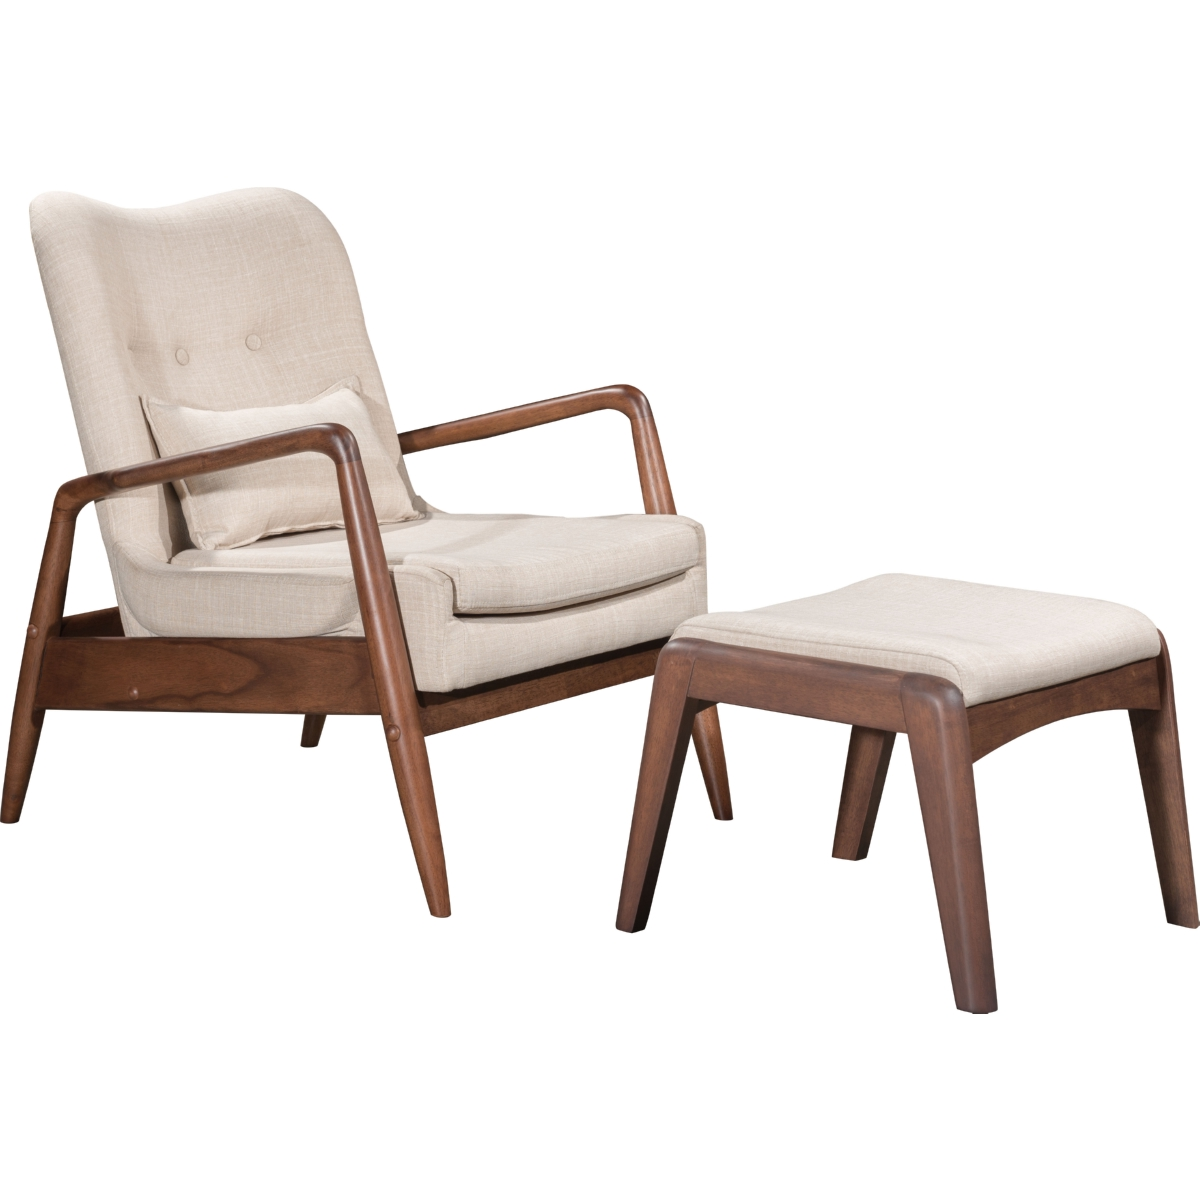 Zuo Modern Furniture 100536 Bully Lounge Chair U0026 Ottoman Set In Tufted  Beige Fabric On Wood Frame